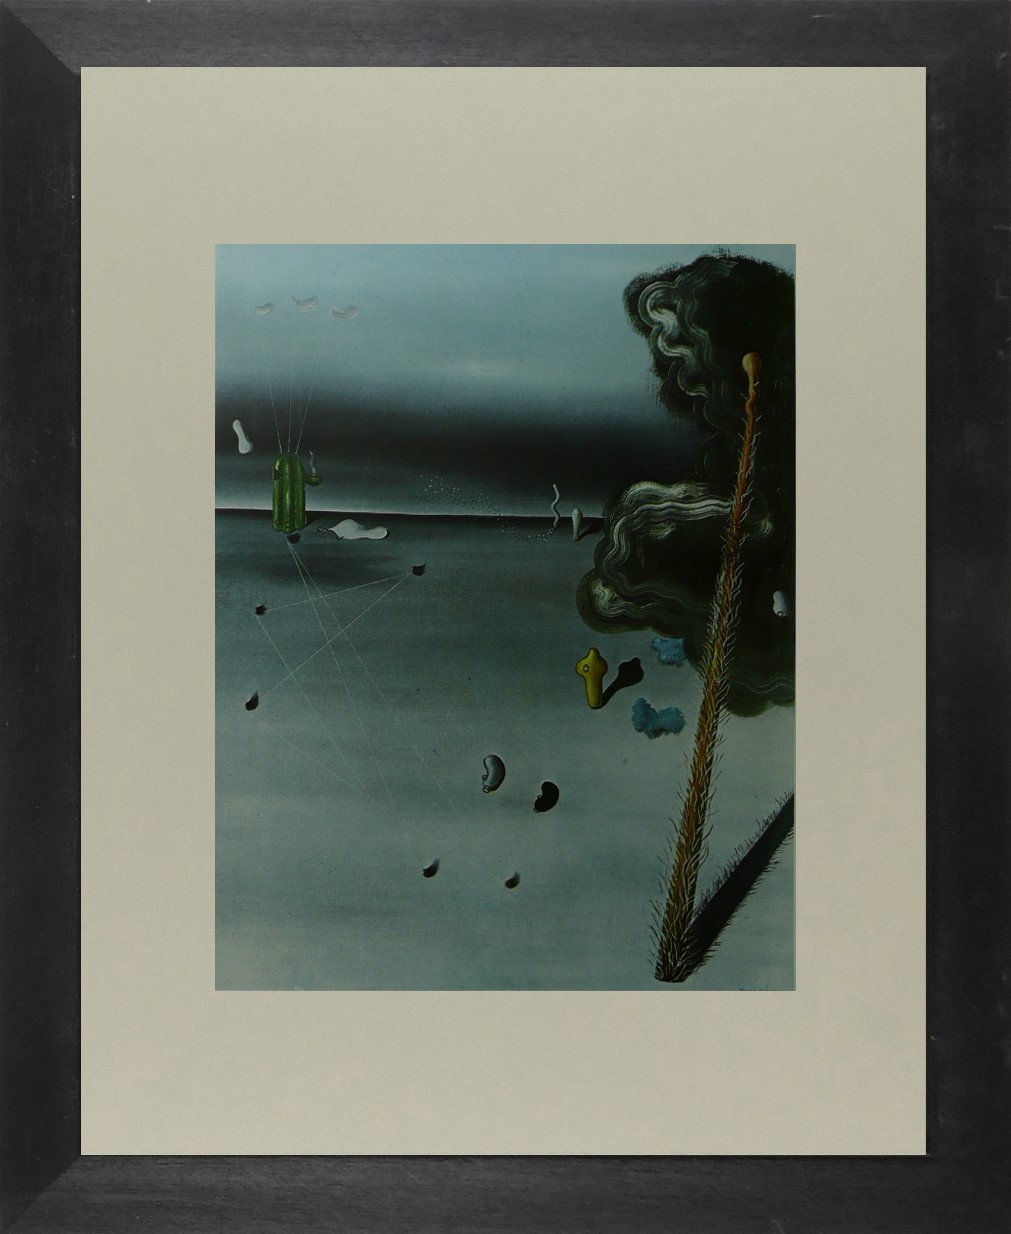 Outside - Yves Tanguy - Framed Picture 11 x 14